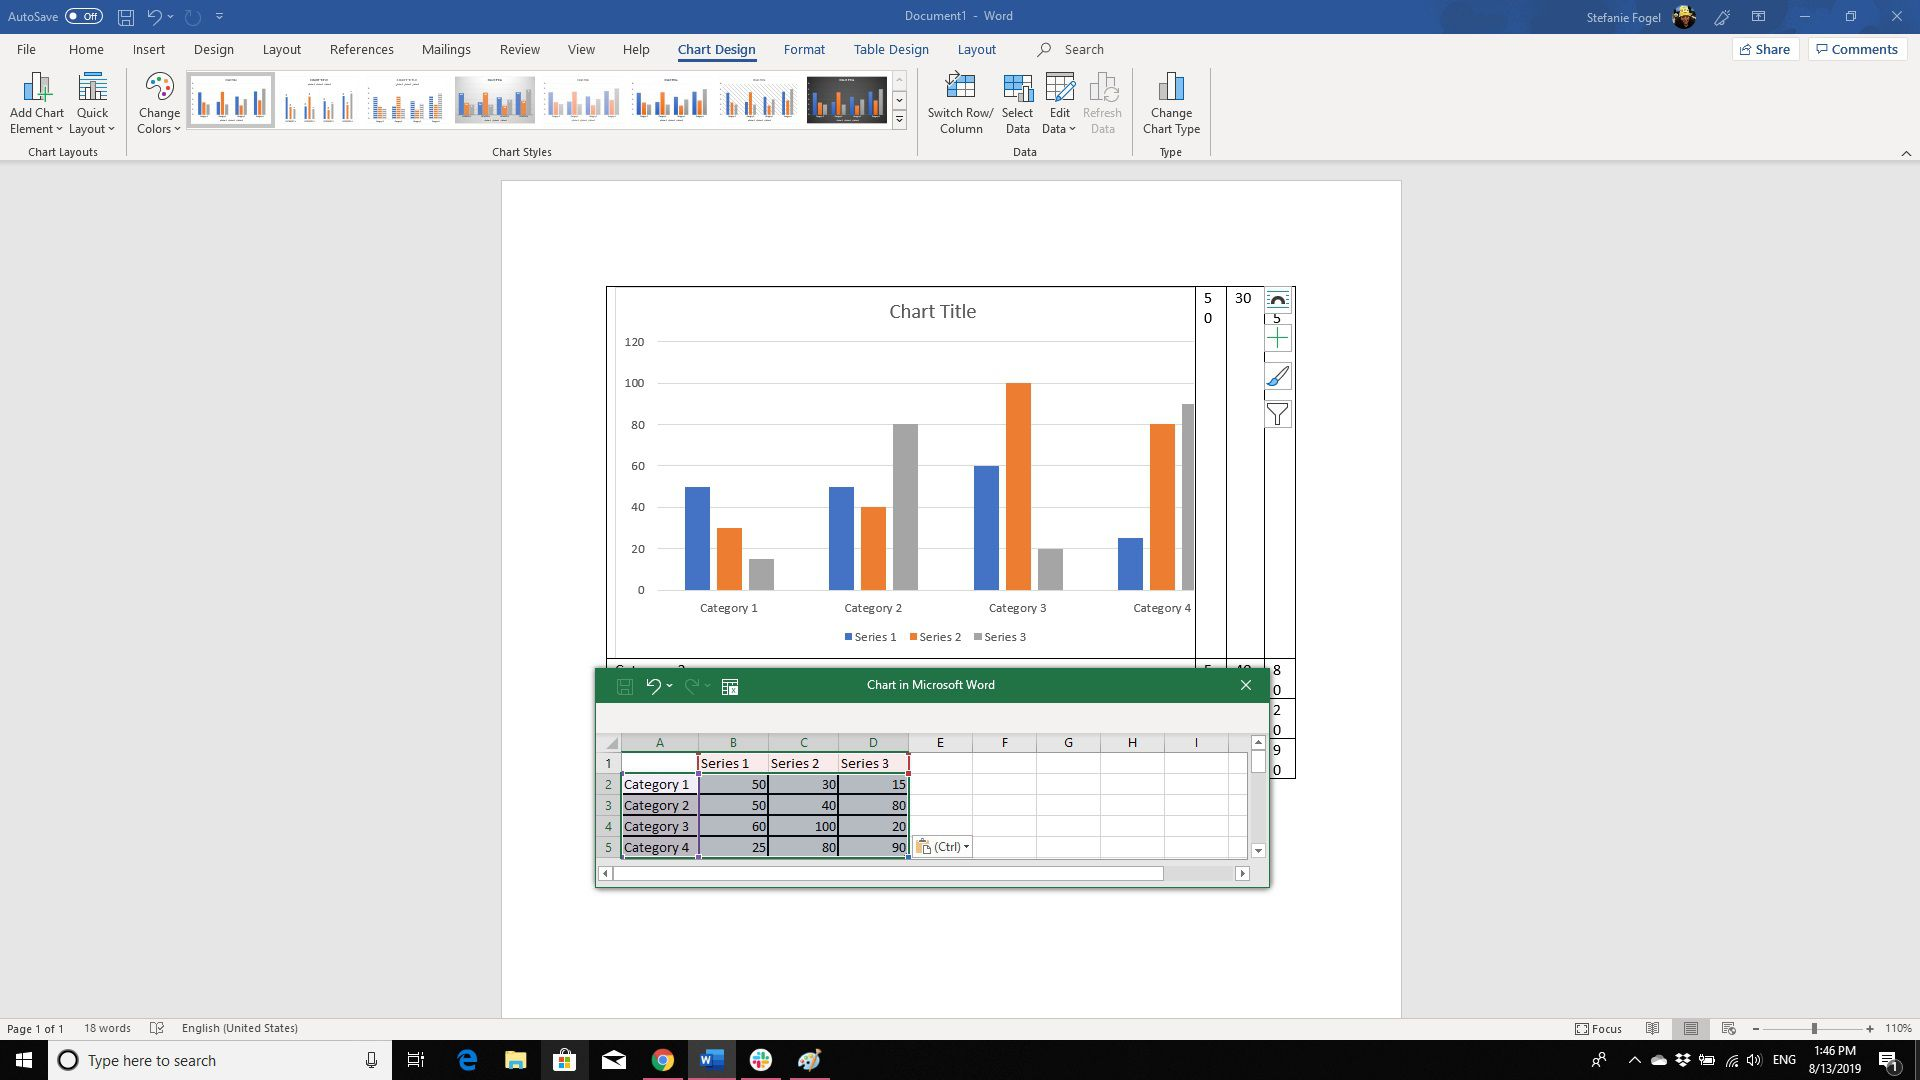 Creating Charts and Graphs From Table Data